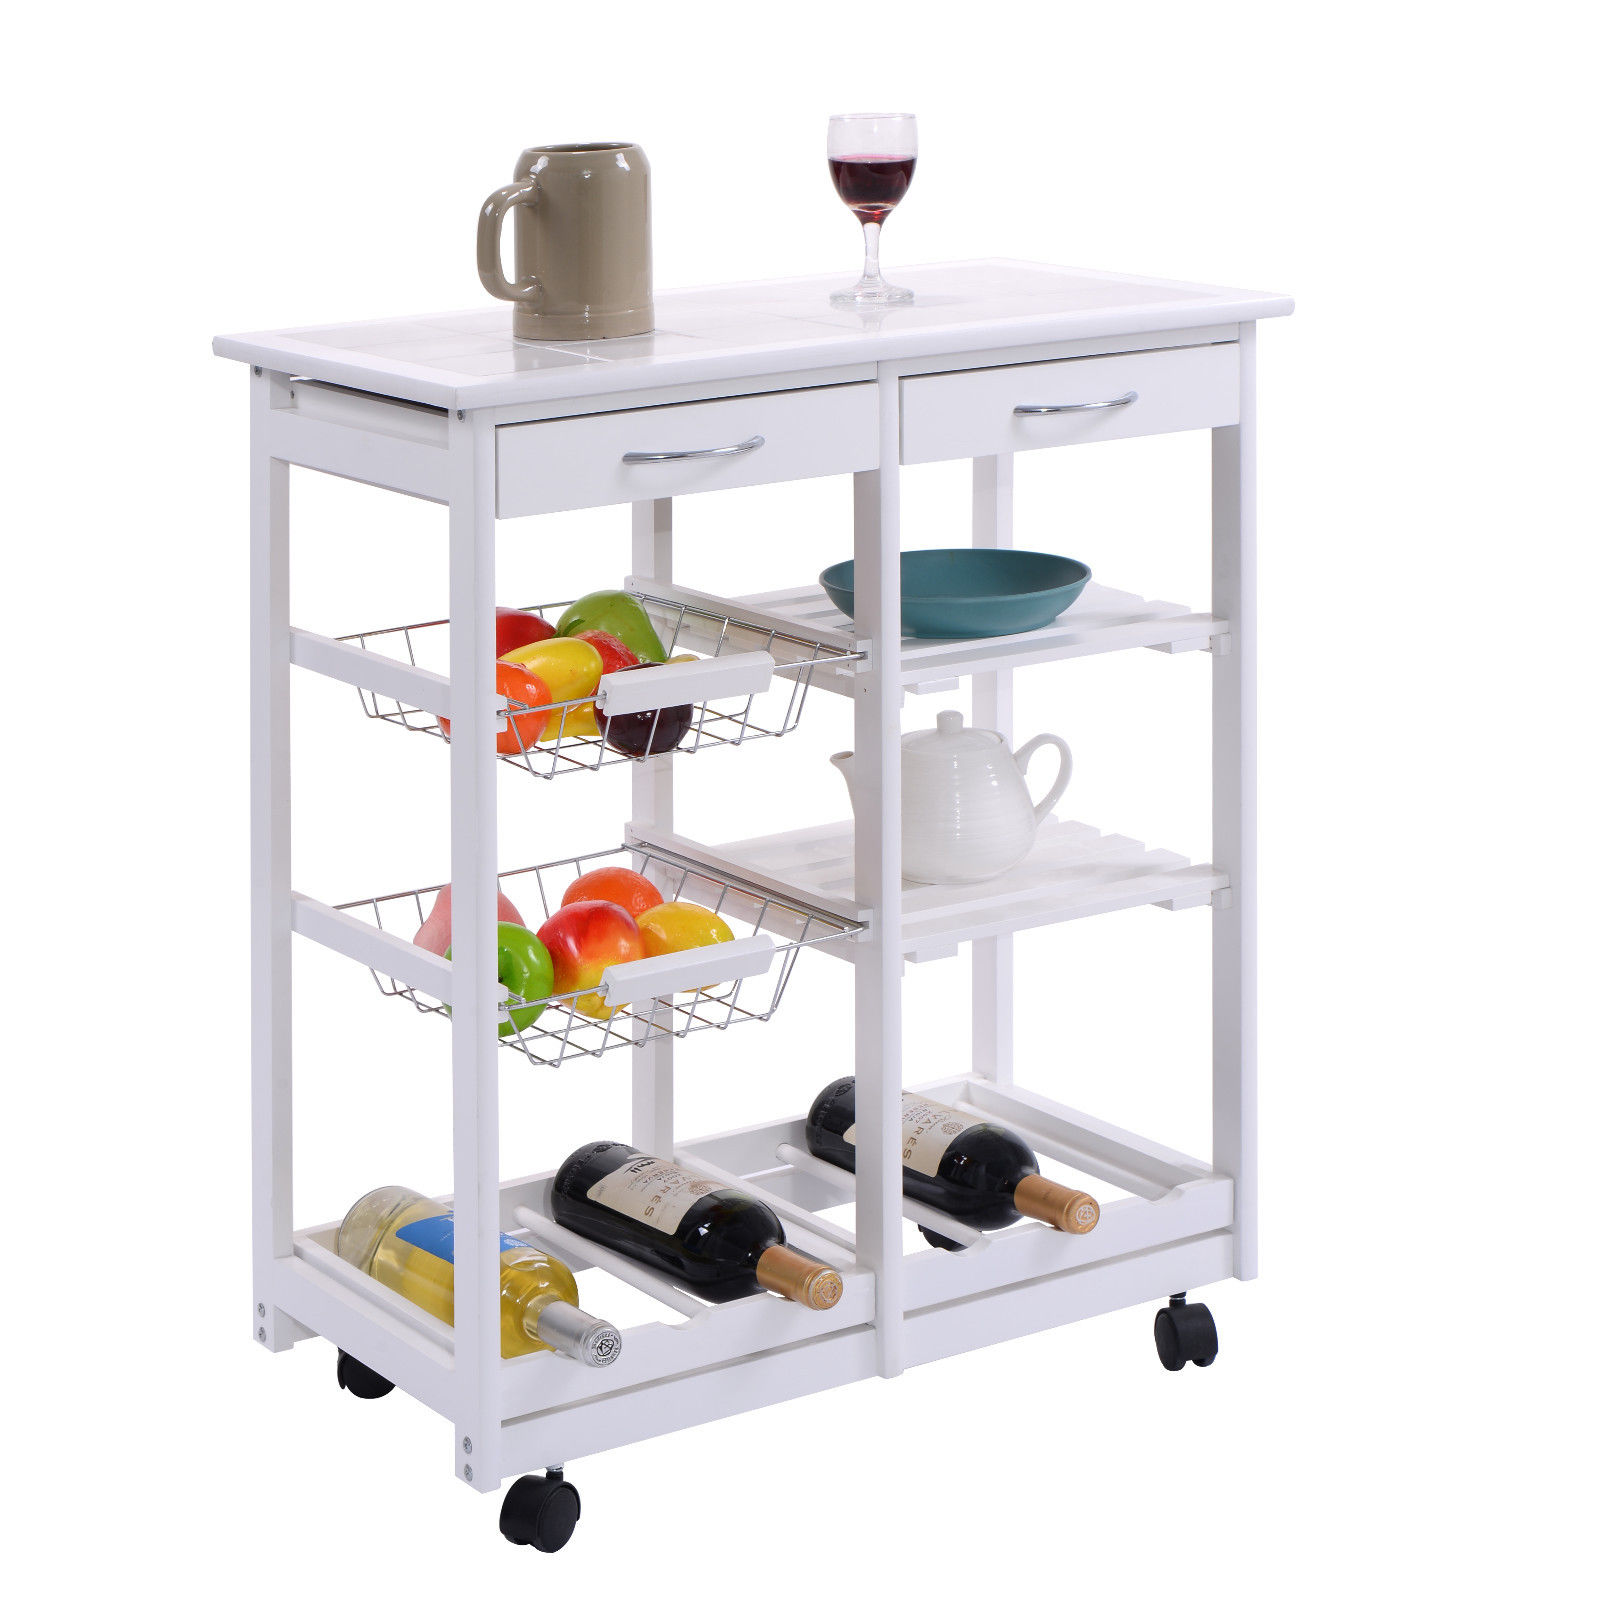 Costway Rolling Wood Kitchen Trolley Cart Dining Storage Drawers Stand Durable